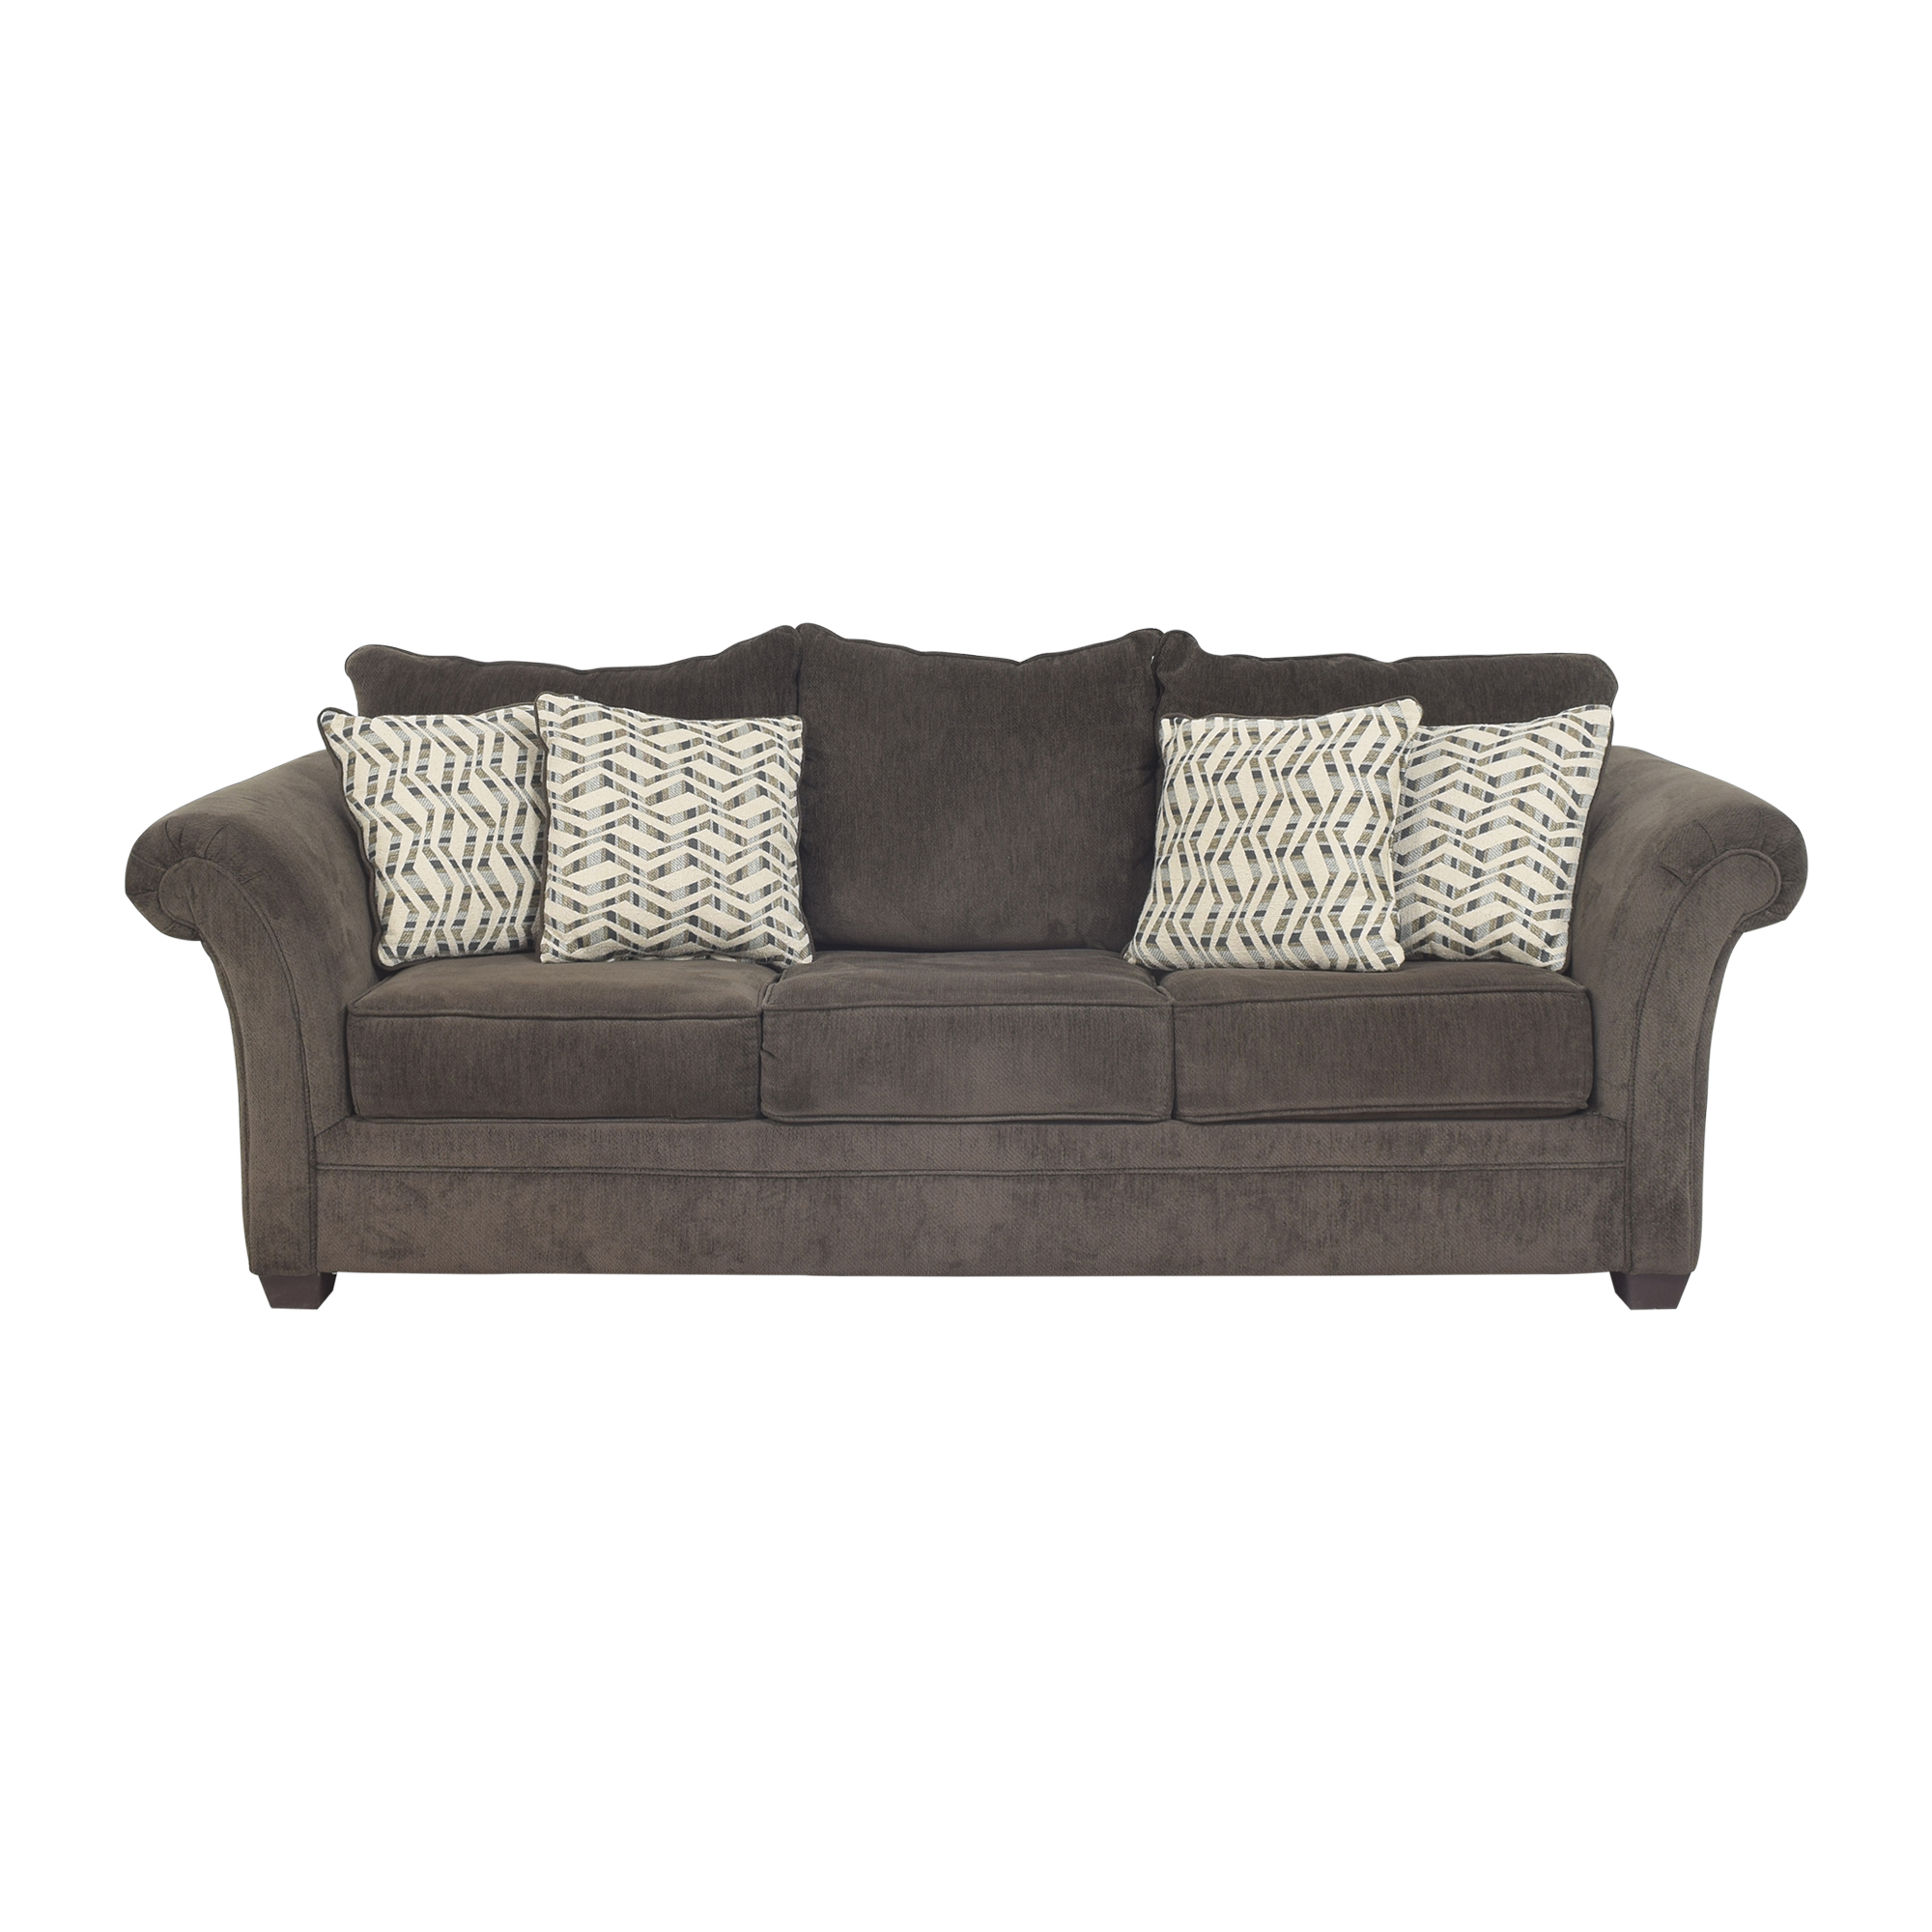 Hughes Furniture Roll Arm Sleeper Sofa / Sofas